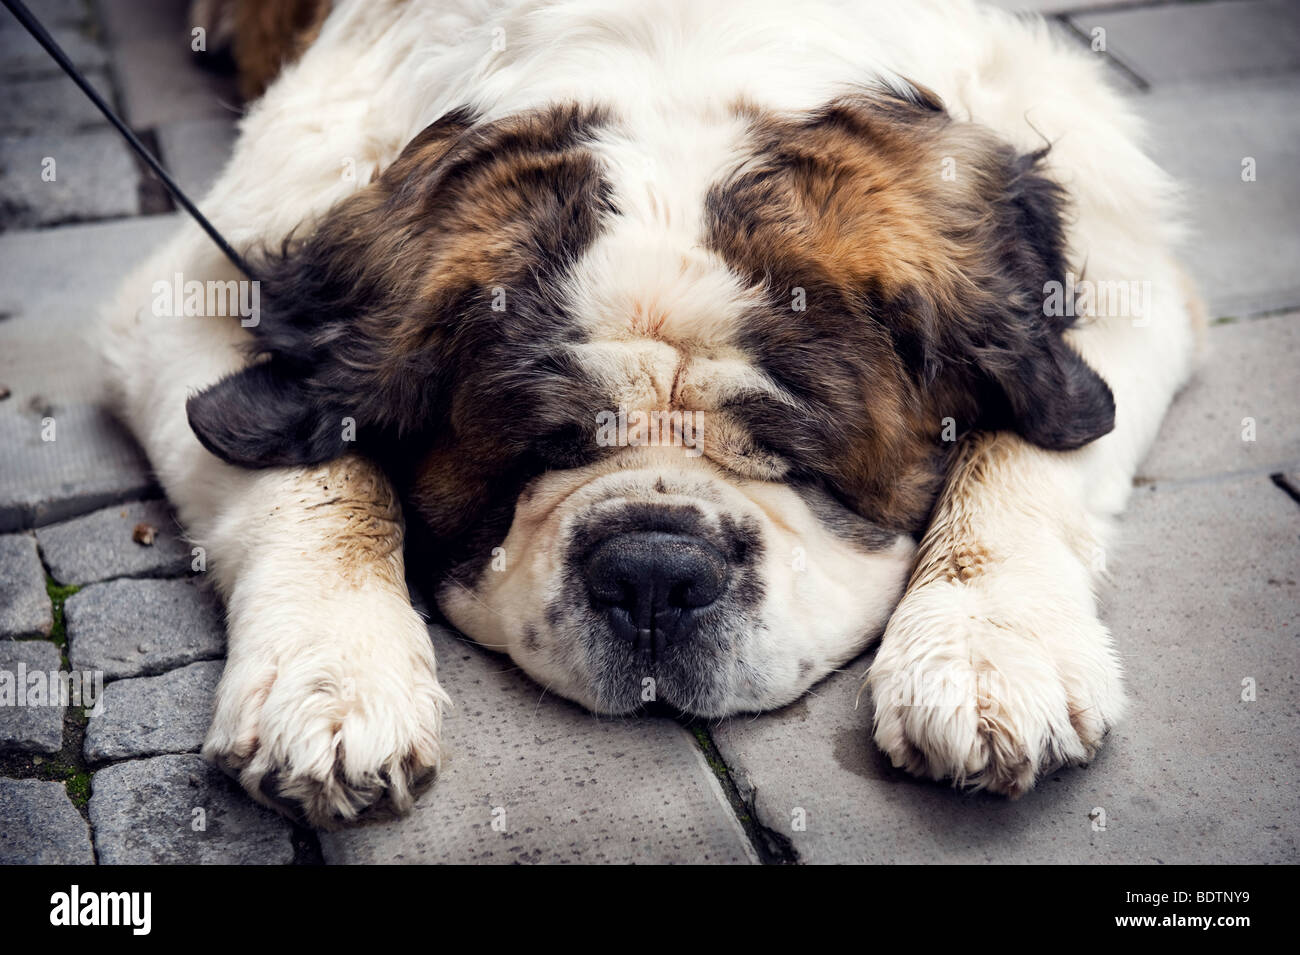 A bored dog lying on the ground - Stock Image